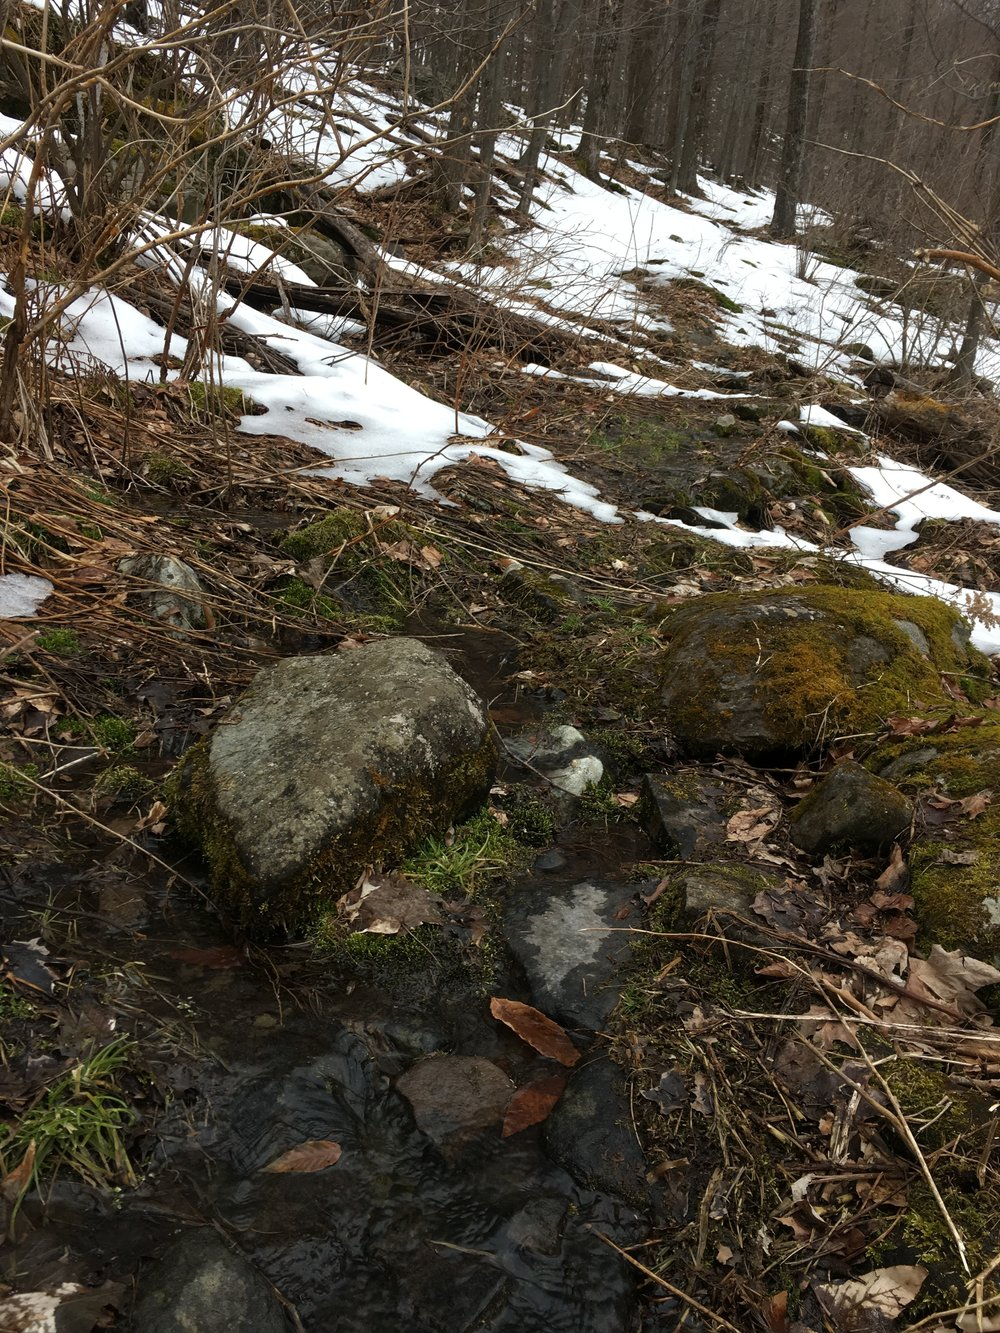 Signs of spring are emerging! Expect wet trails with mixed snow and ice wherever you go in the Park this weekend.